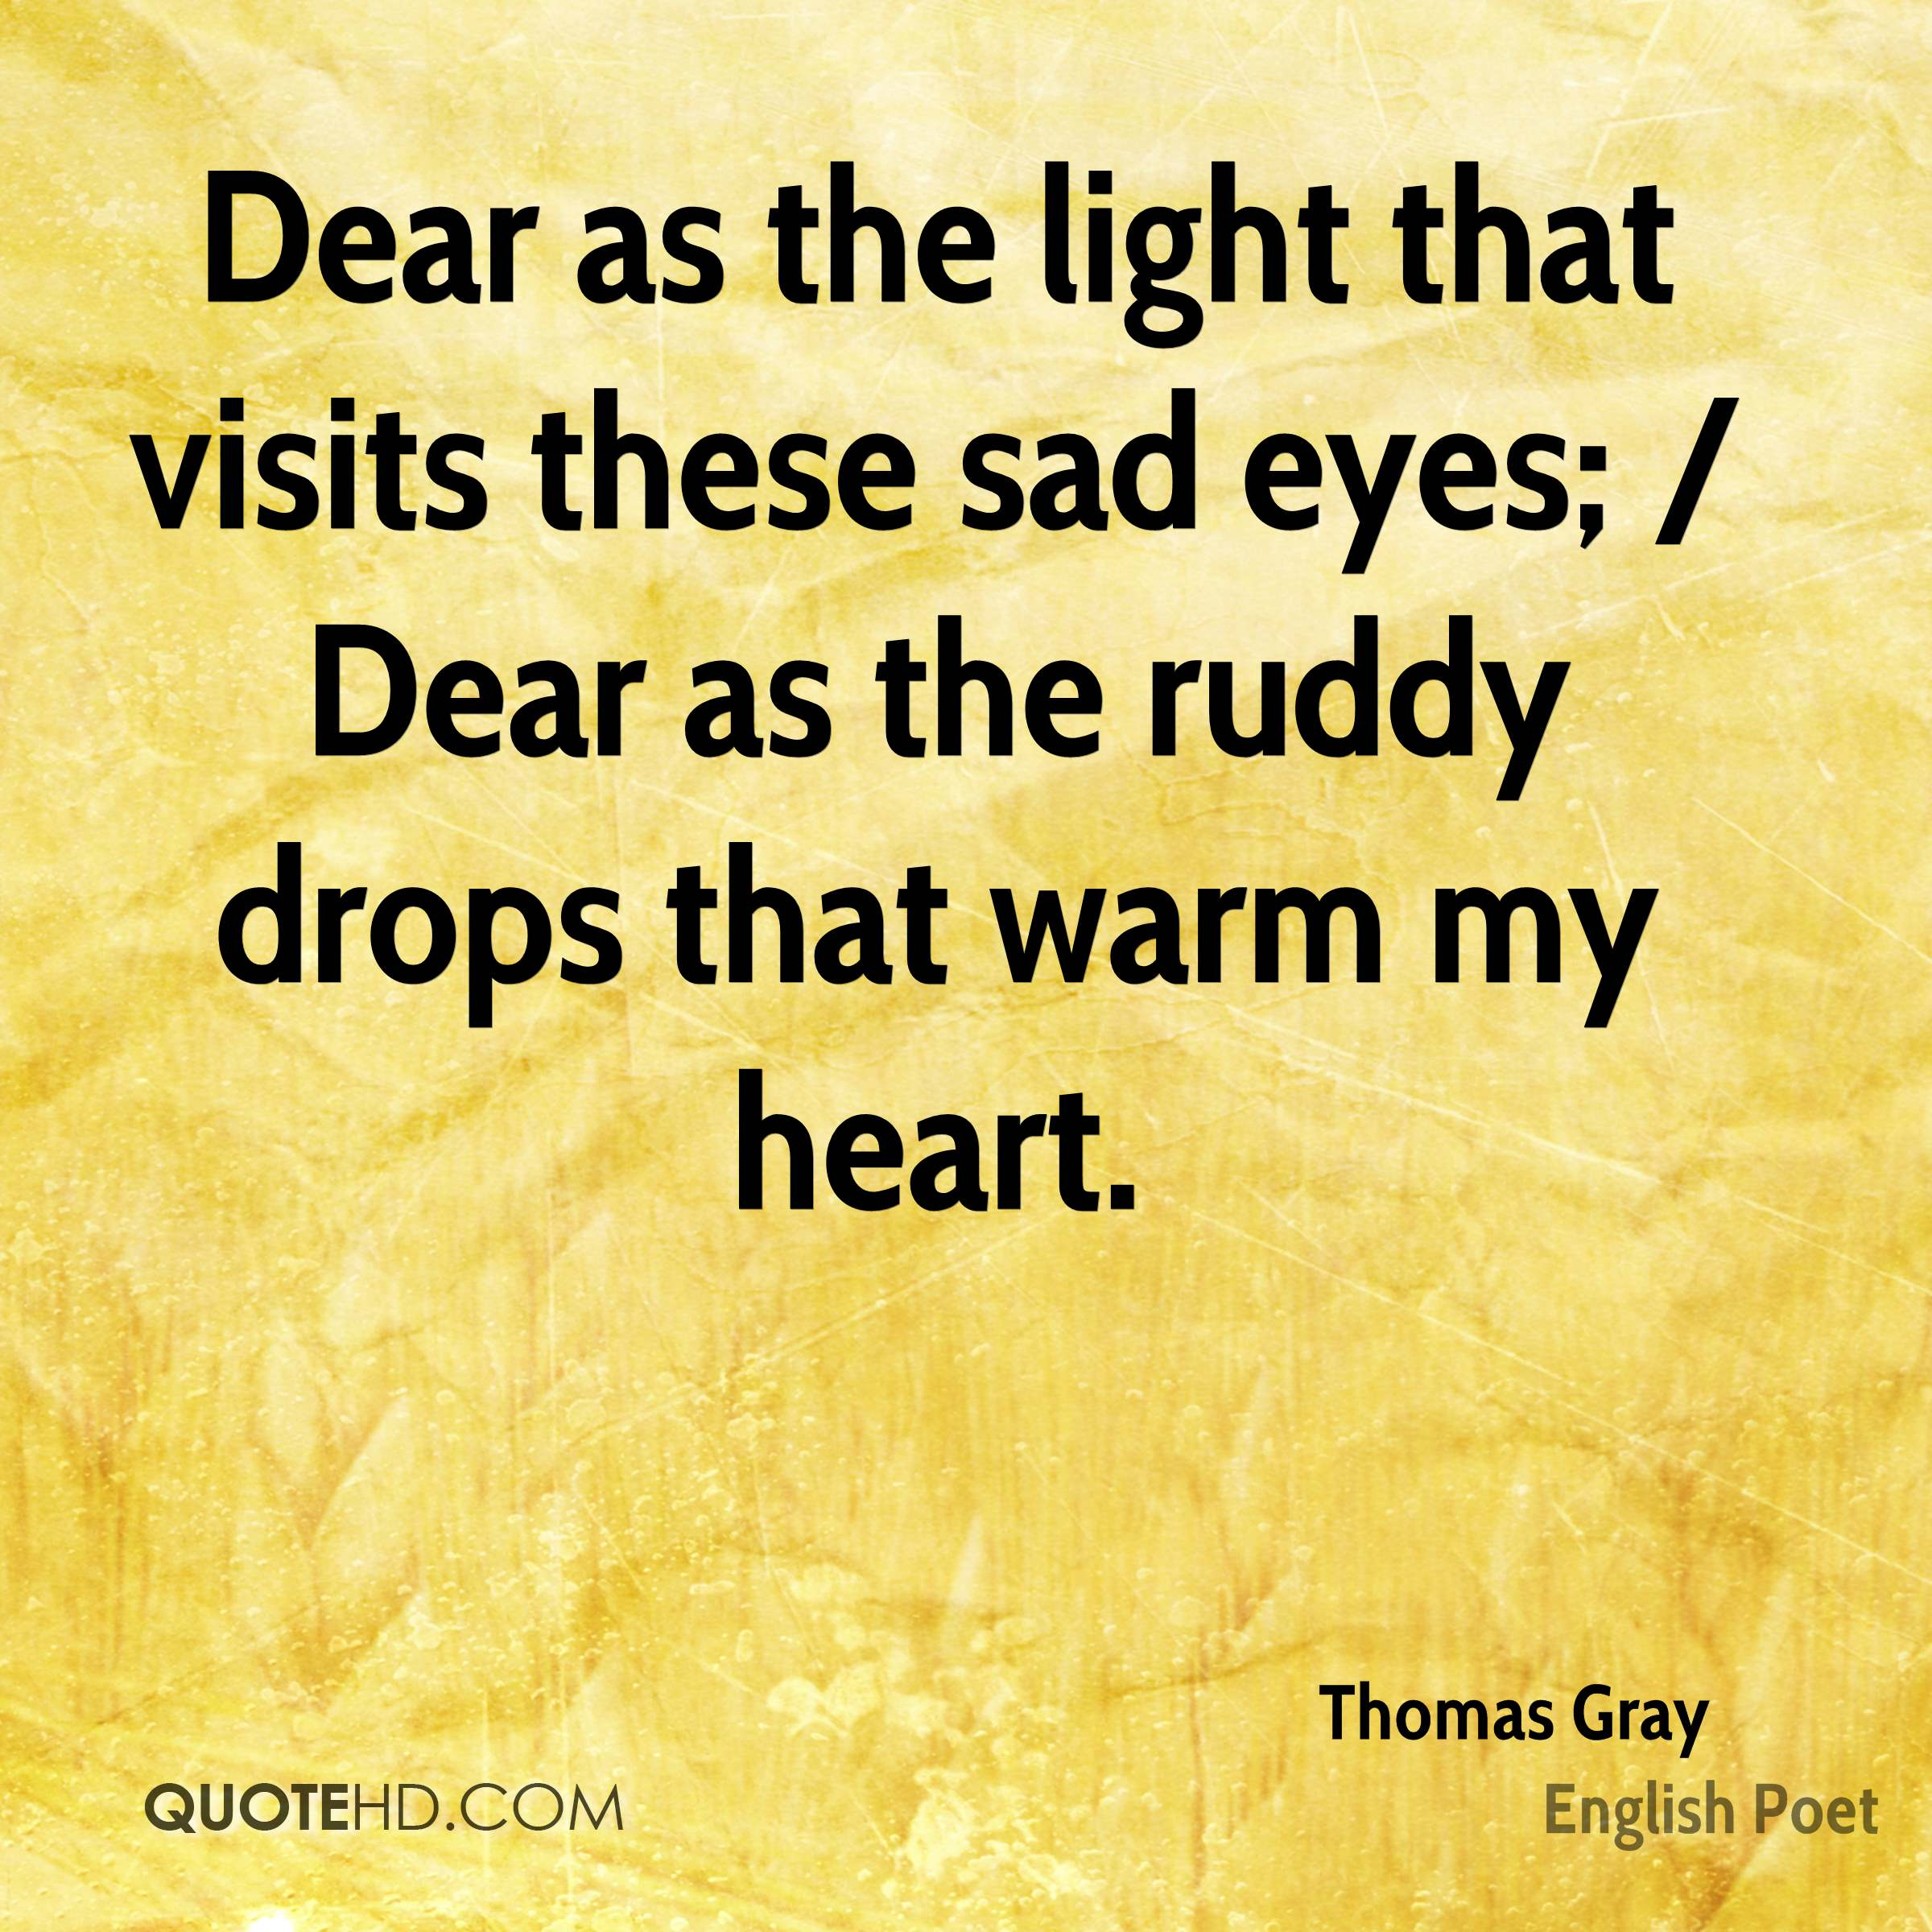 Dear as the light that visits these sad eyes; / Dear as the ruddy drops that warm my heart.